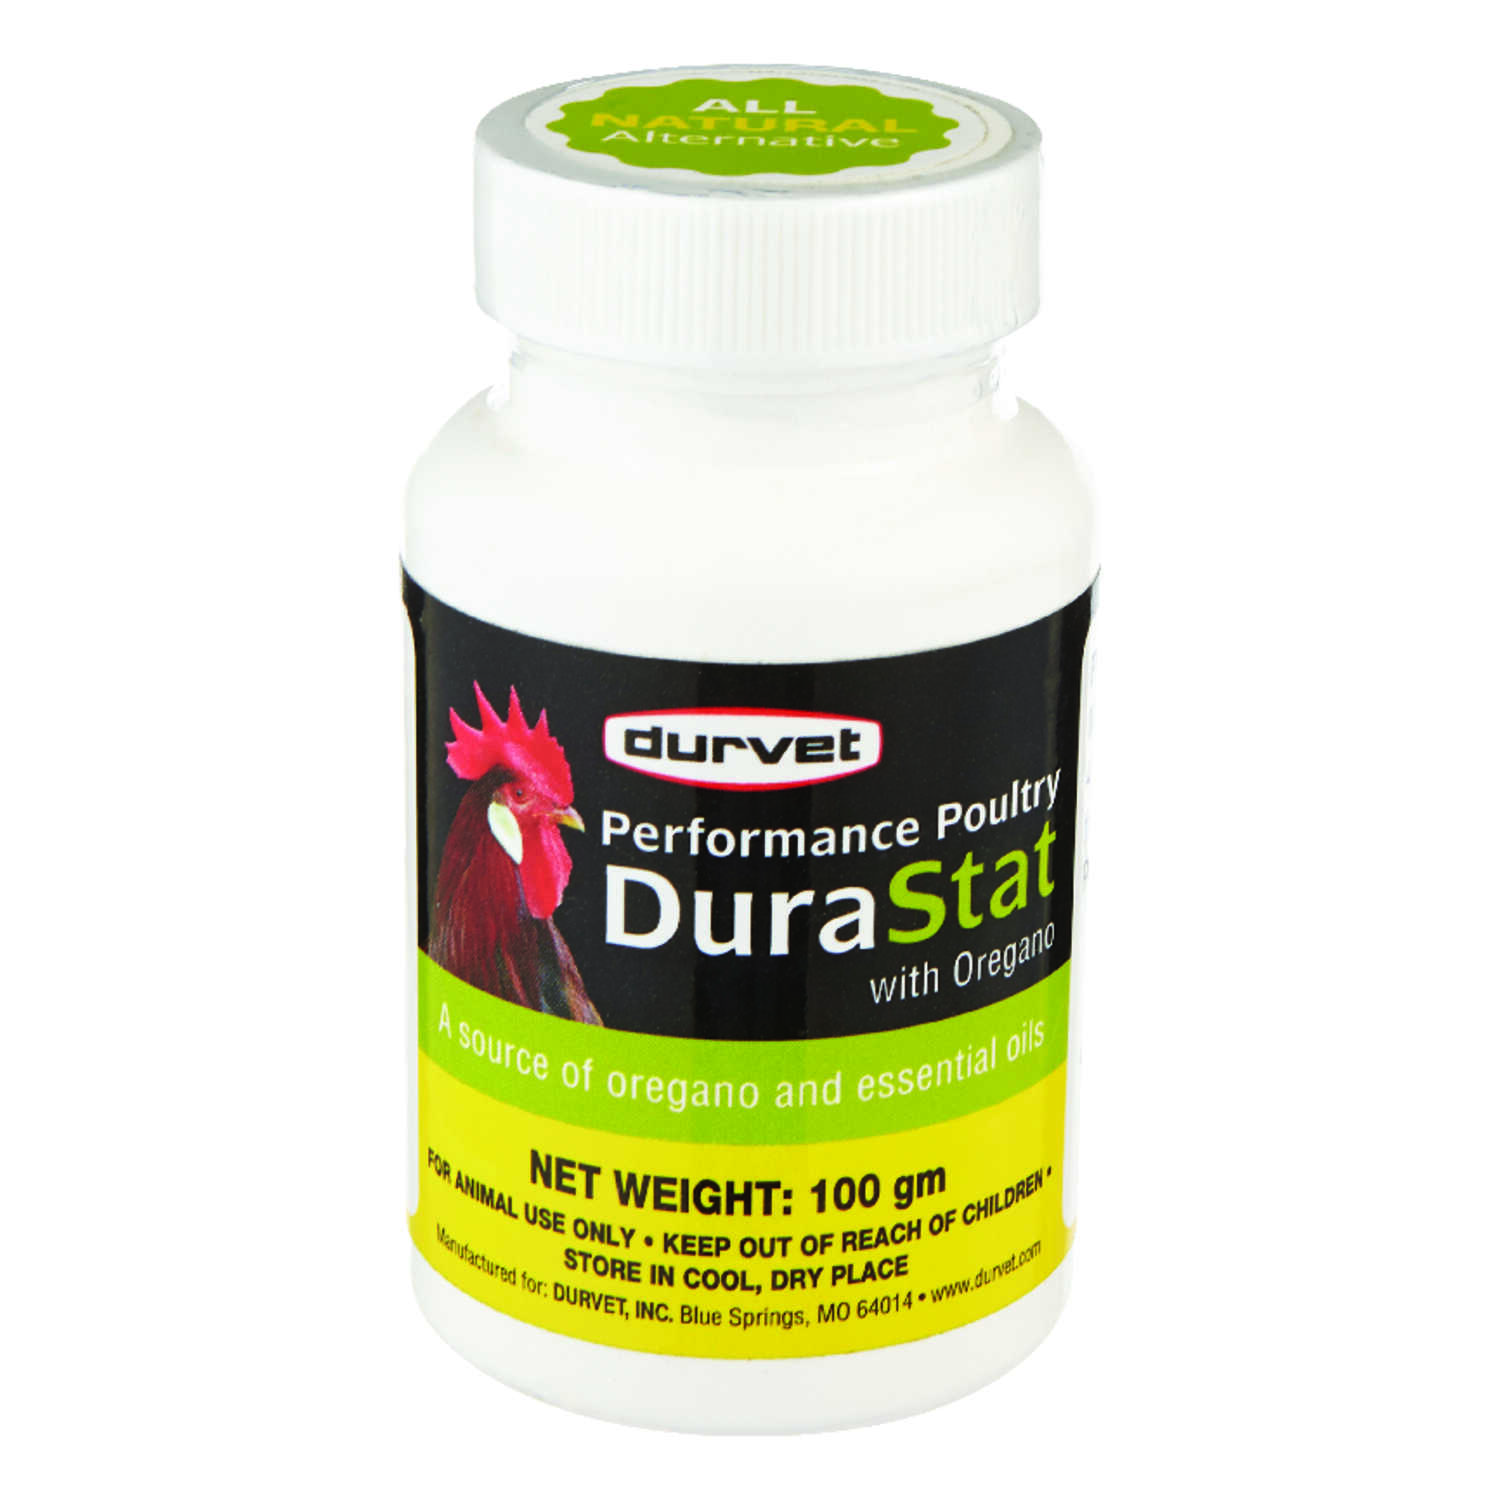 DuraStat  Solid  Vitamins  For Poultry 100 gm